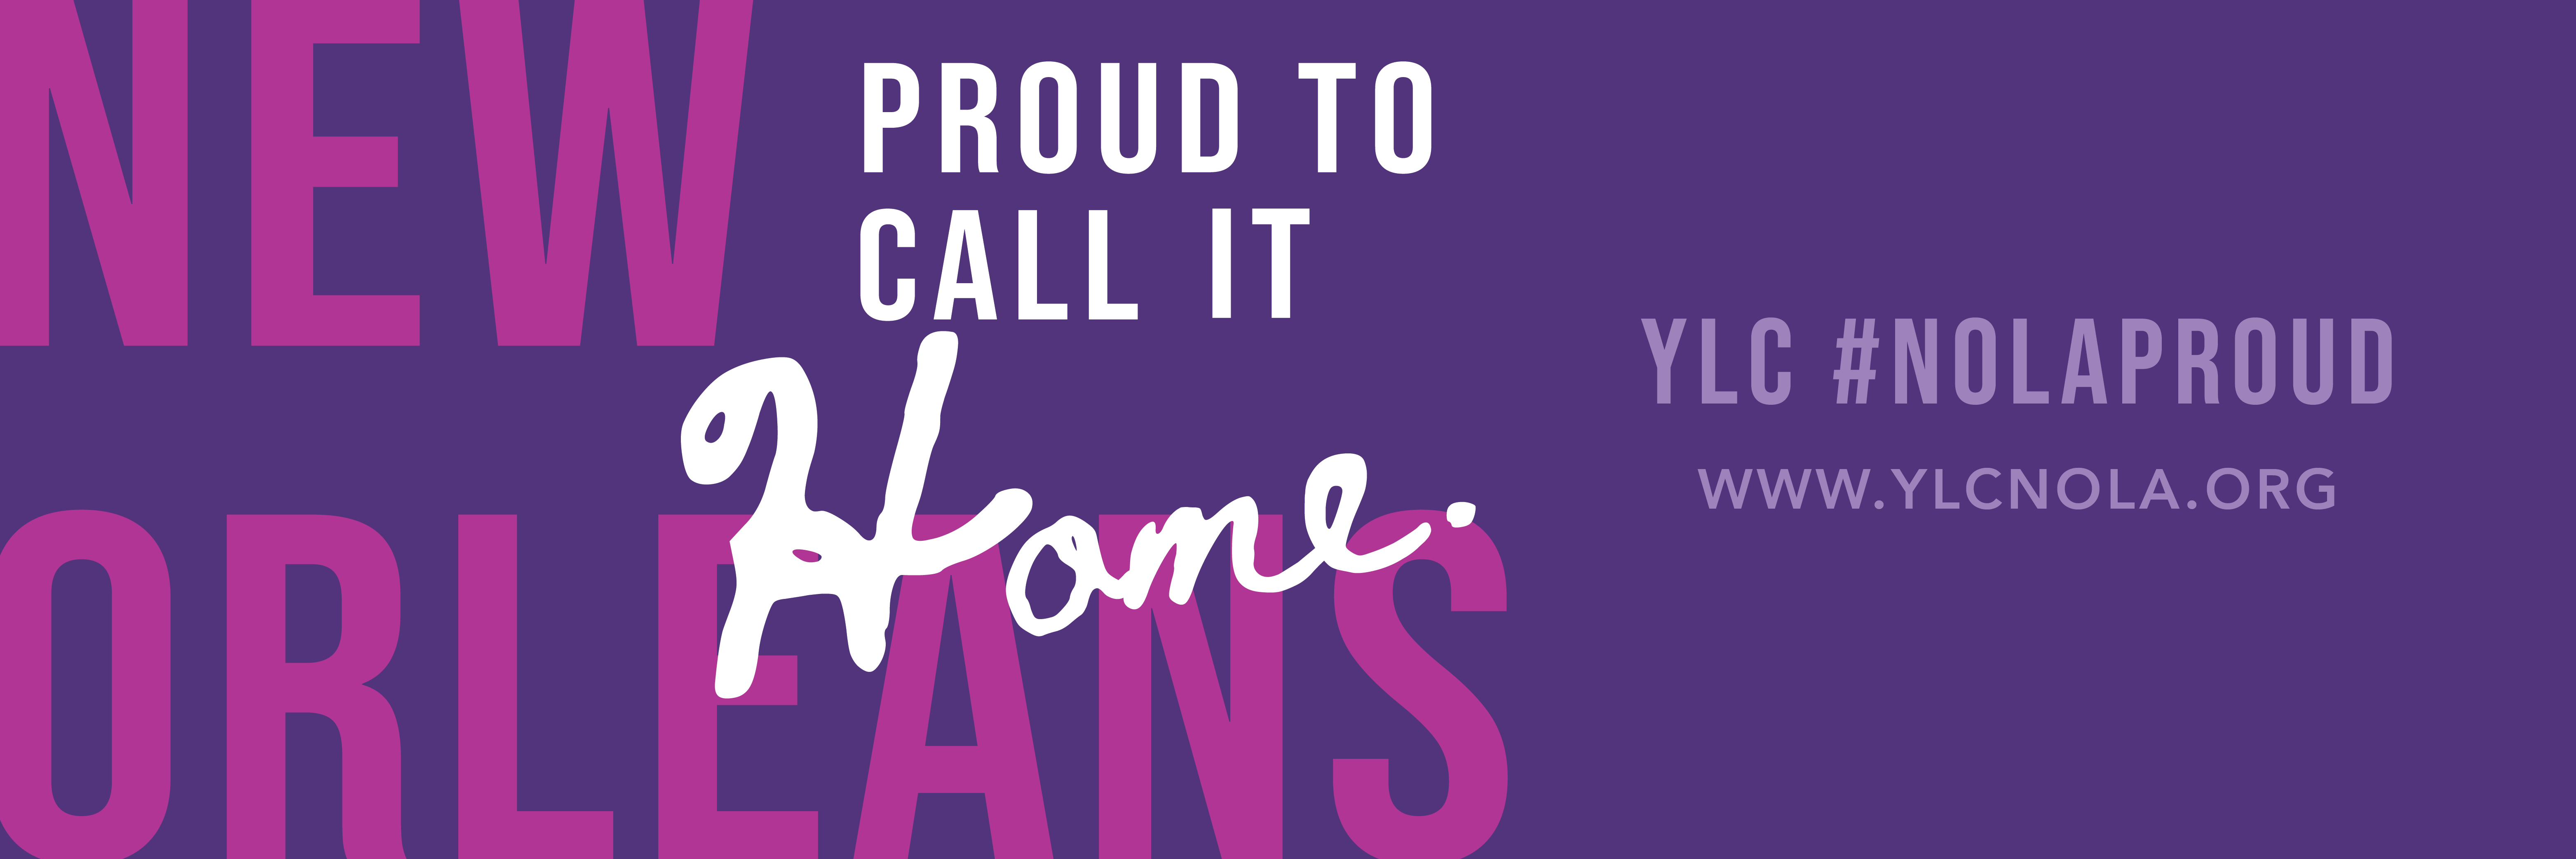 Twitter Cover Photo YLC New Orleans Proud to Call It Home